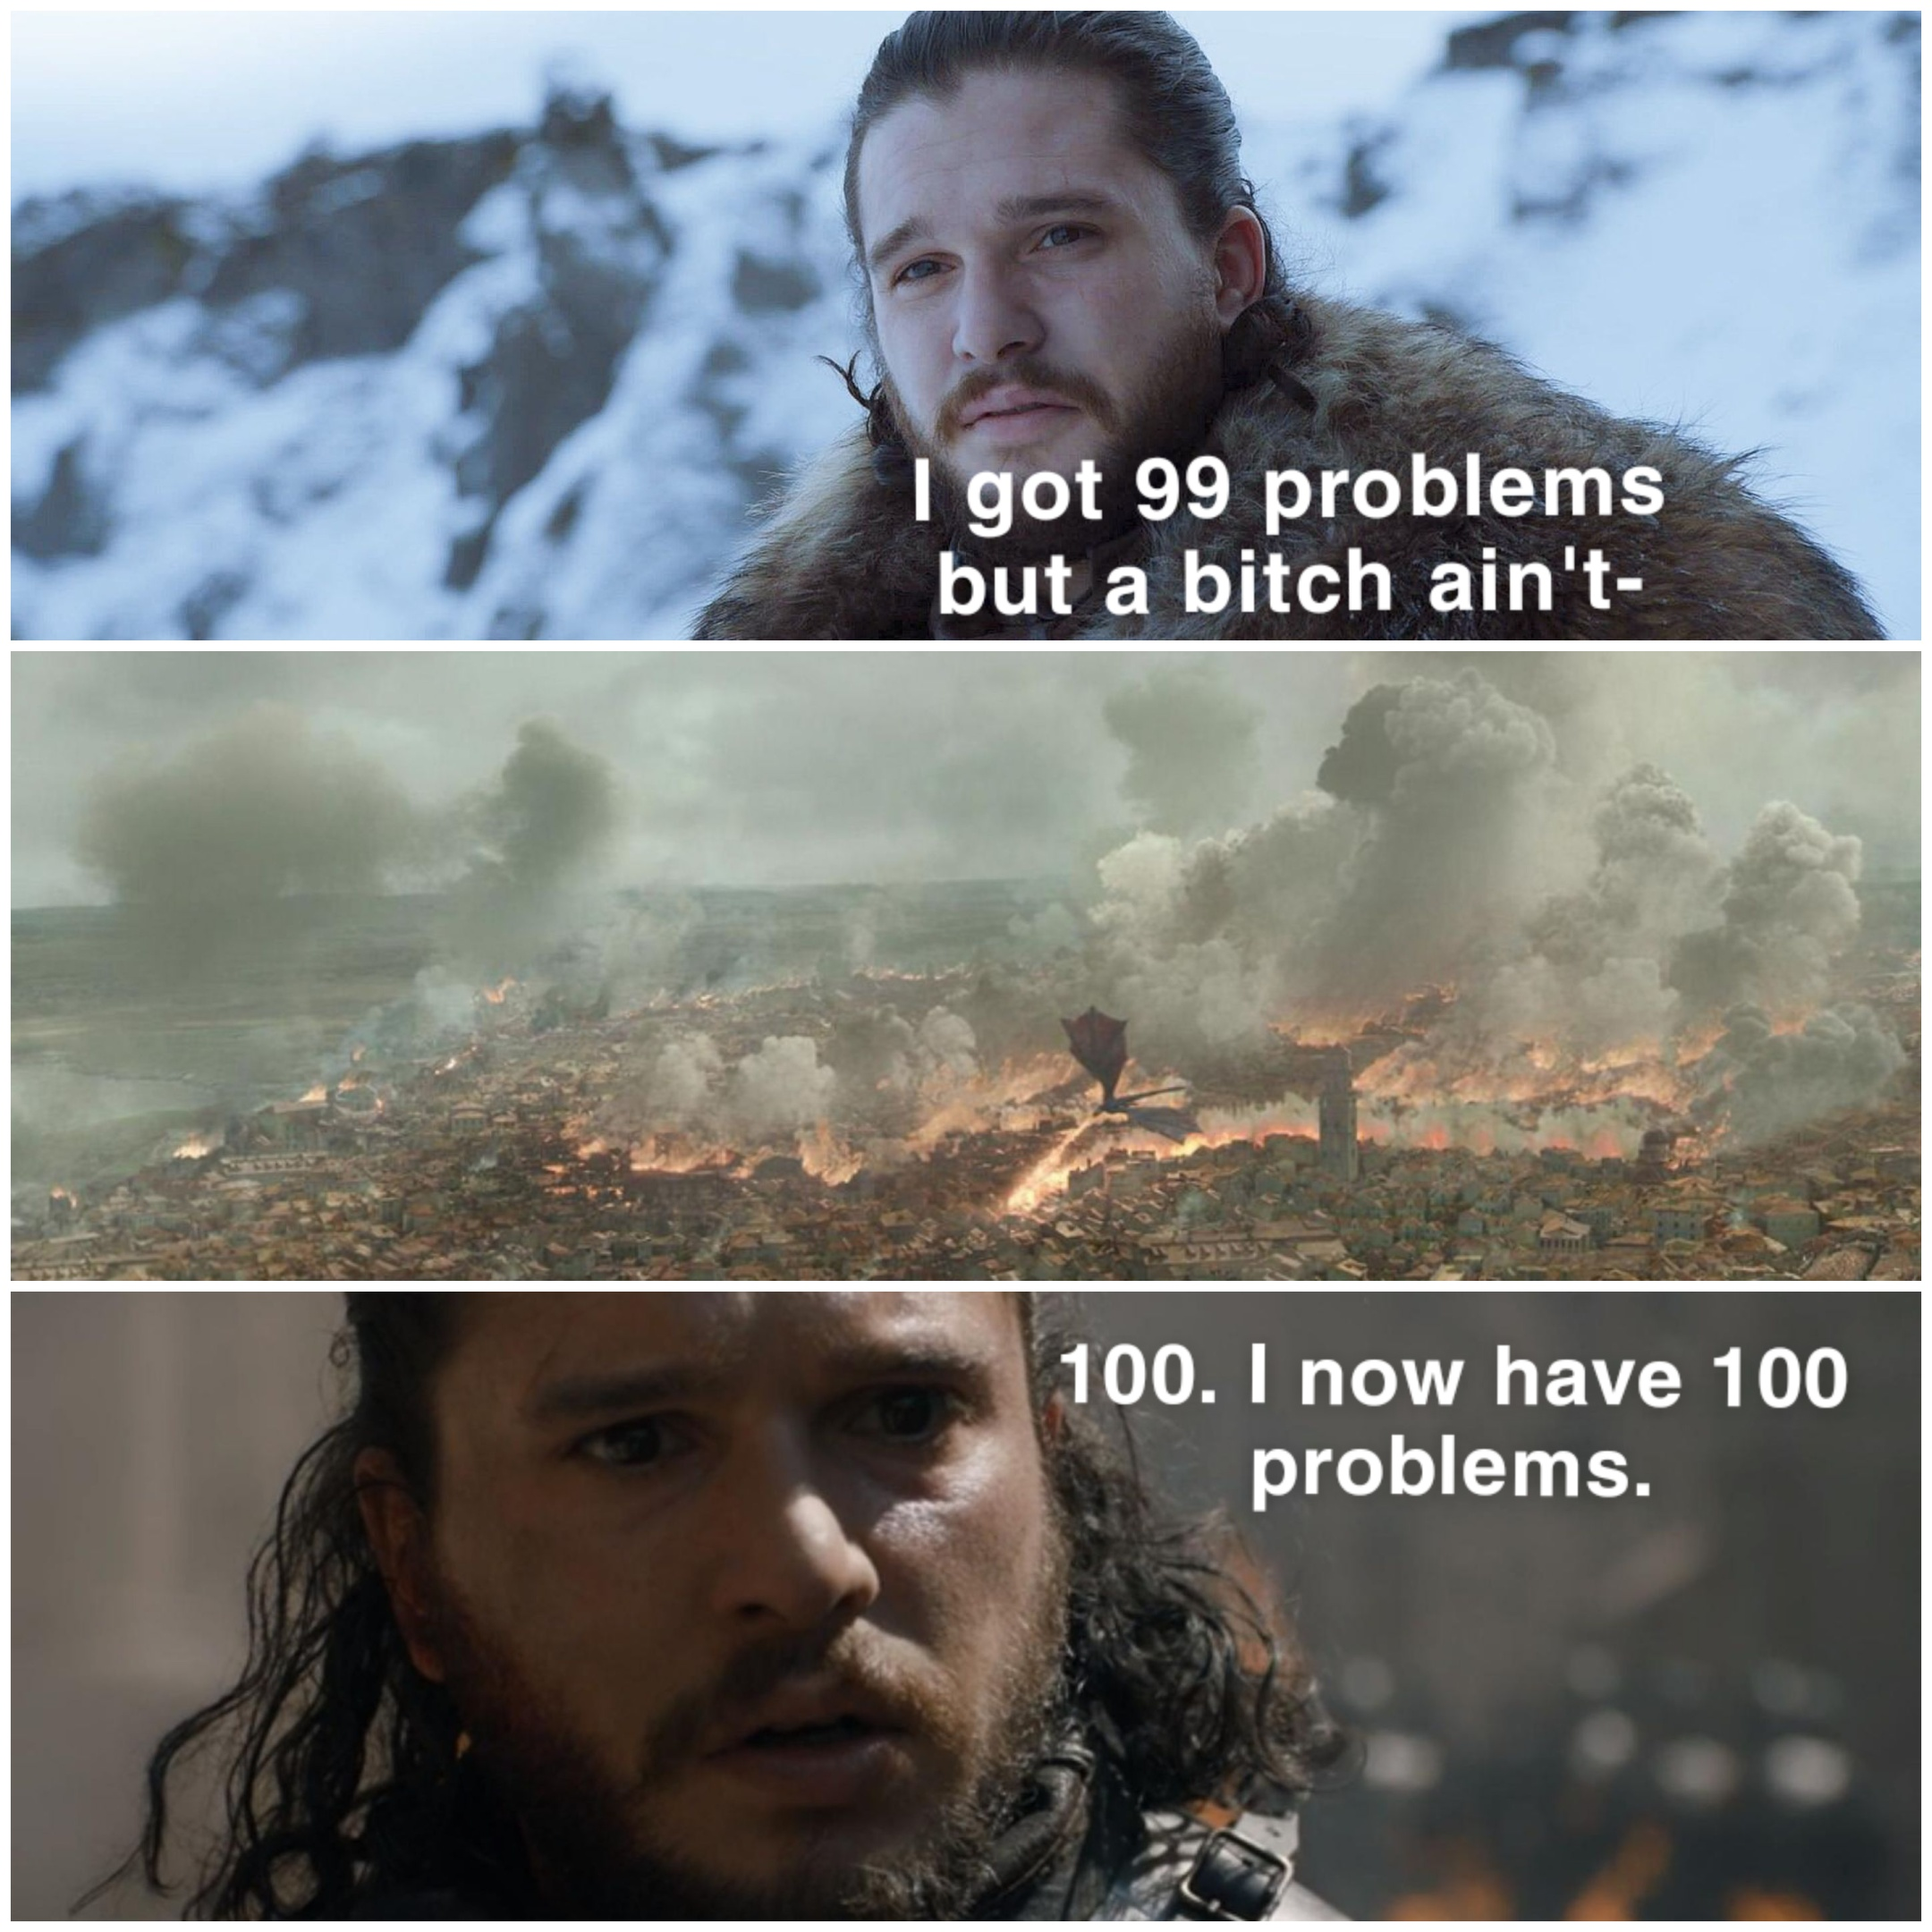 99 or 100 problems